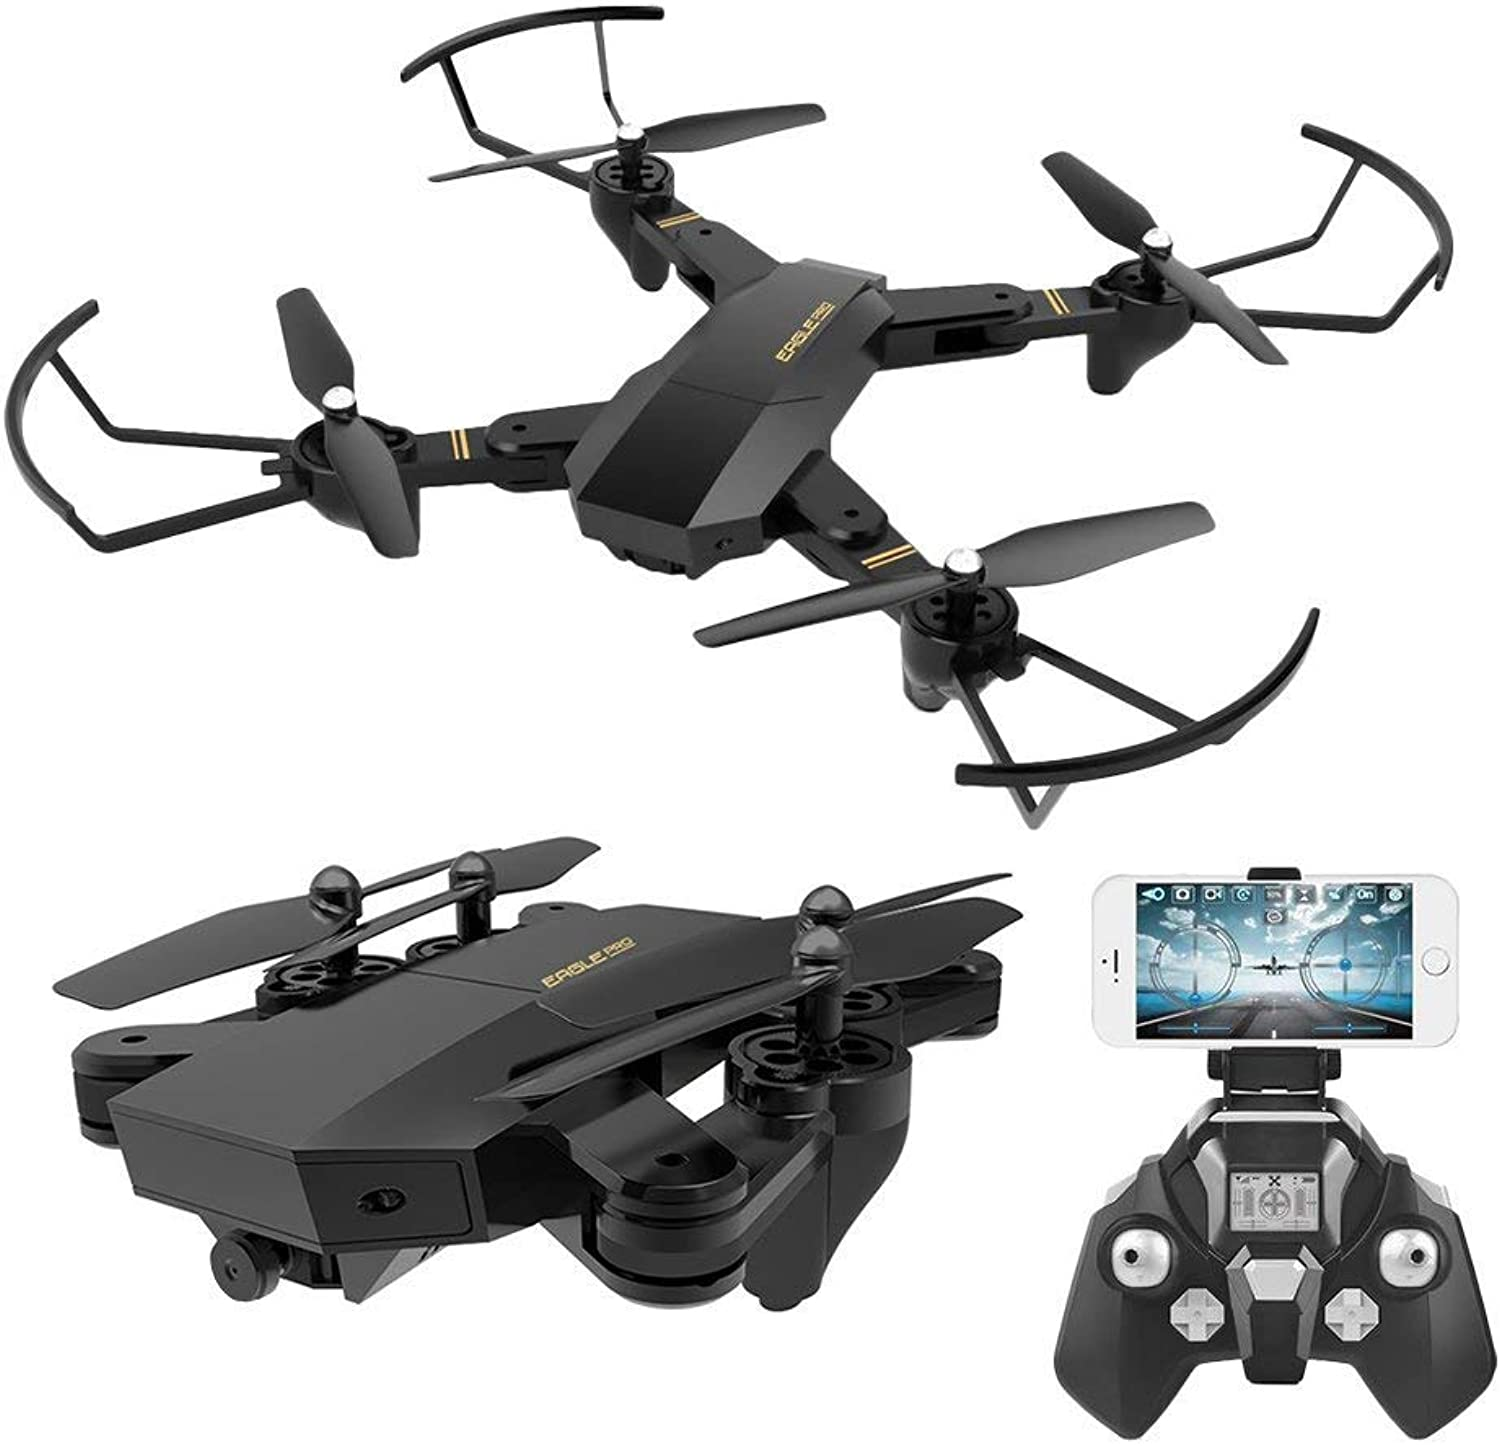 RC Quadcopter with 2.4GHz 6Axis Gyro Altitude Hold Function and 720P HD 2MP Camera Helicopter